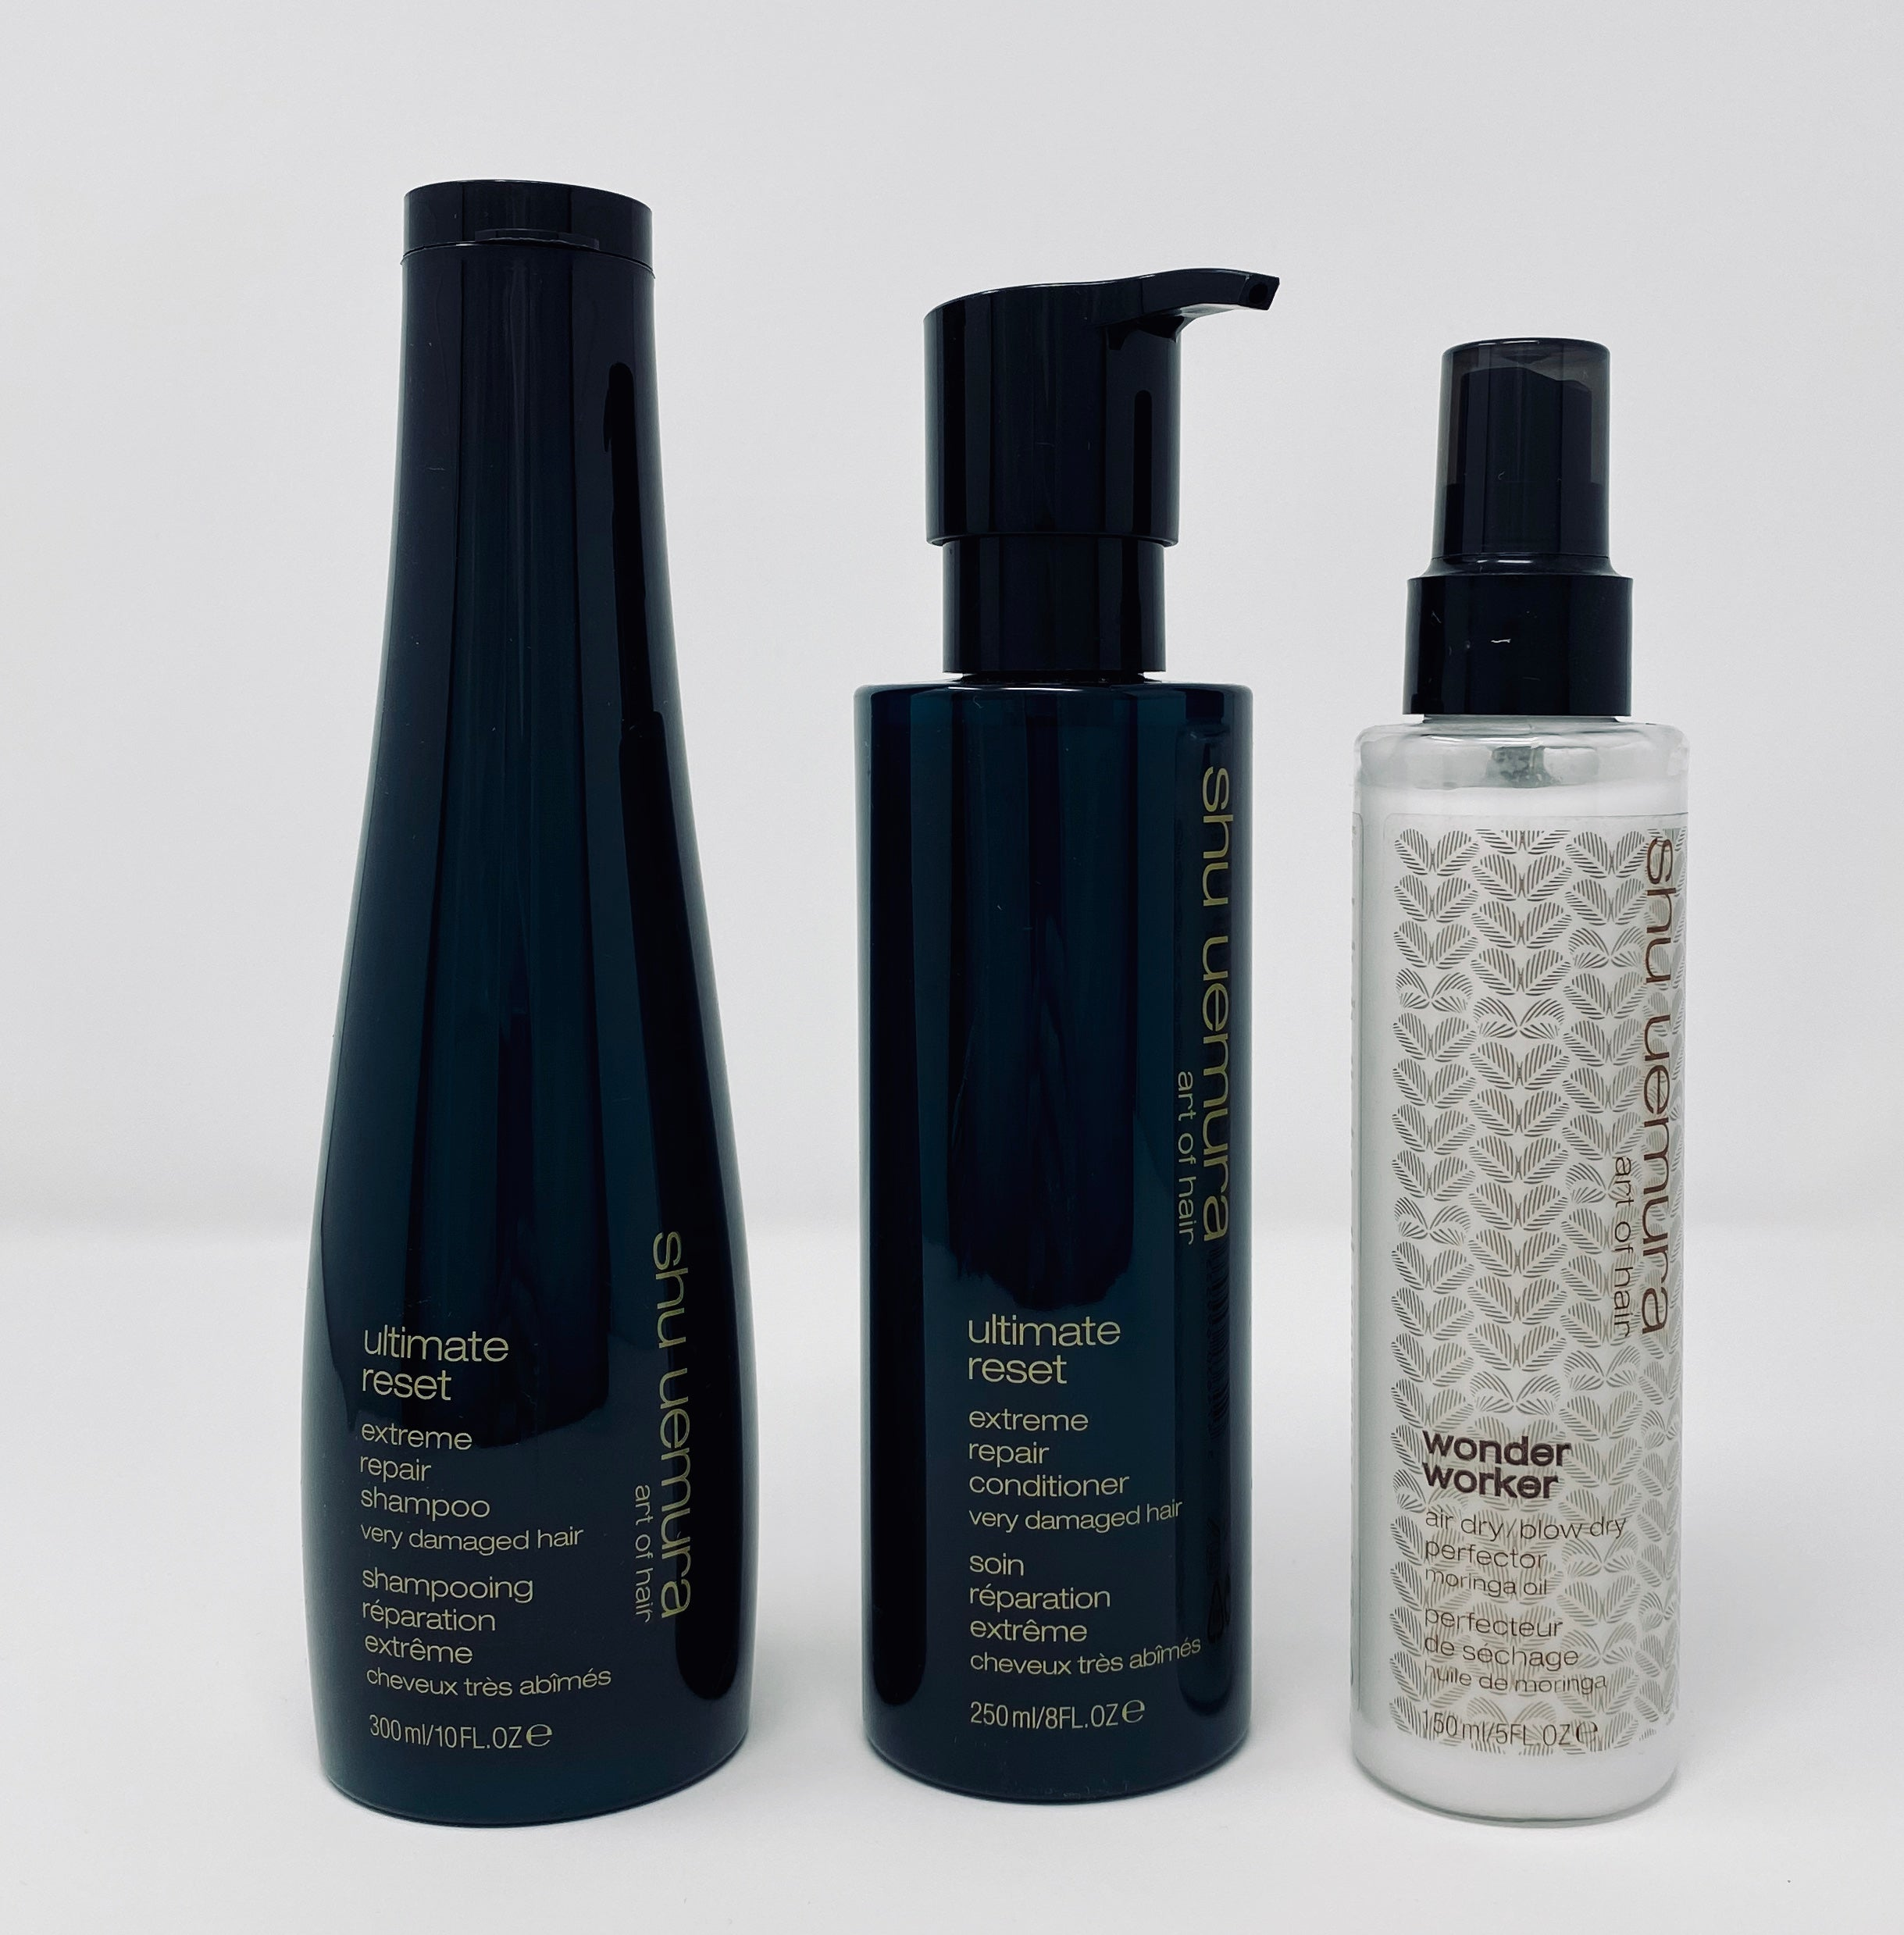 The Essential ULTIMATE RESET Hair Care set for